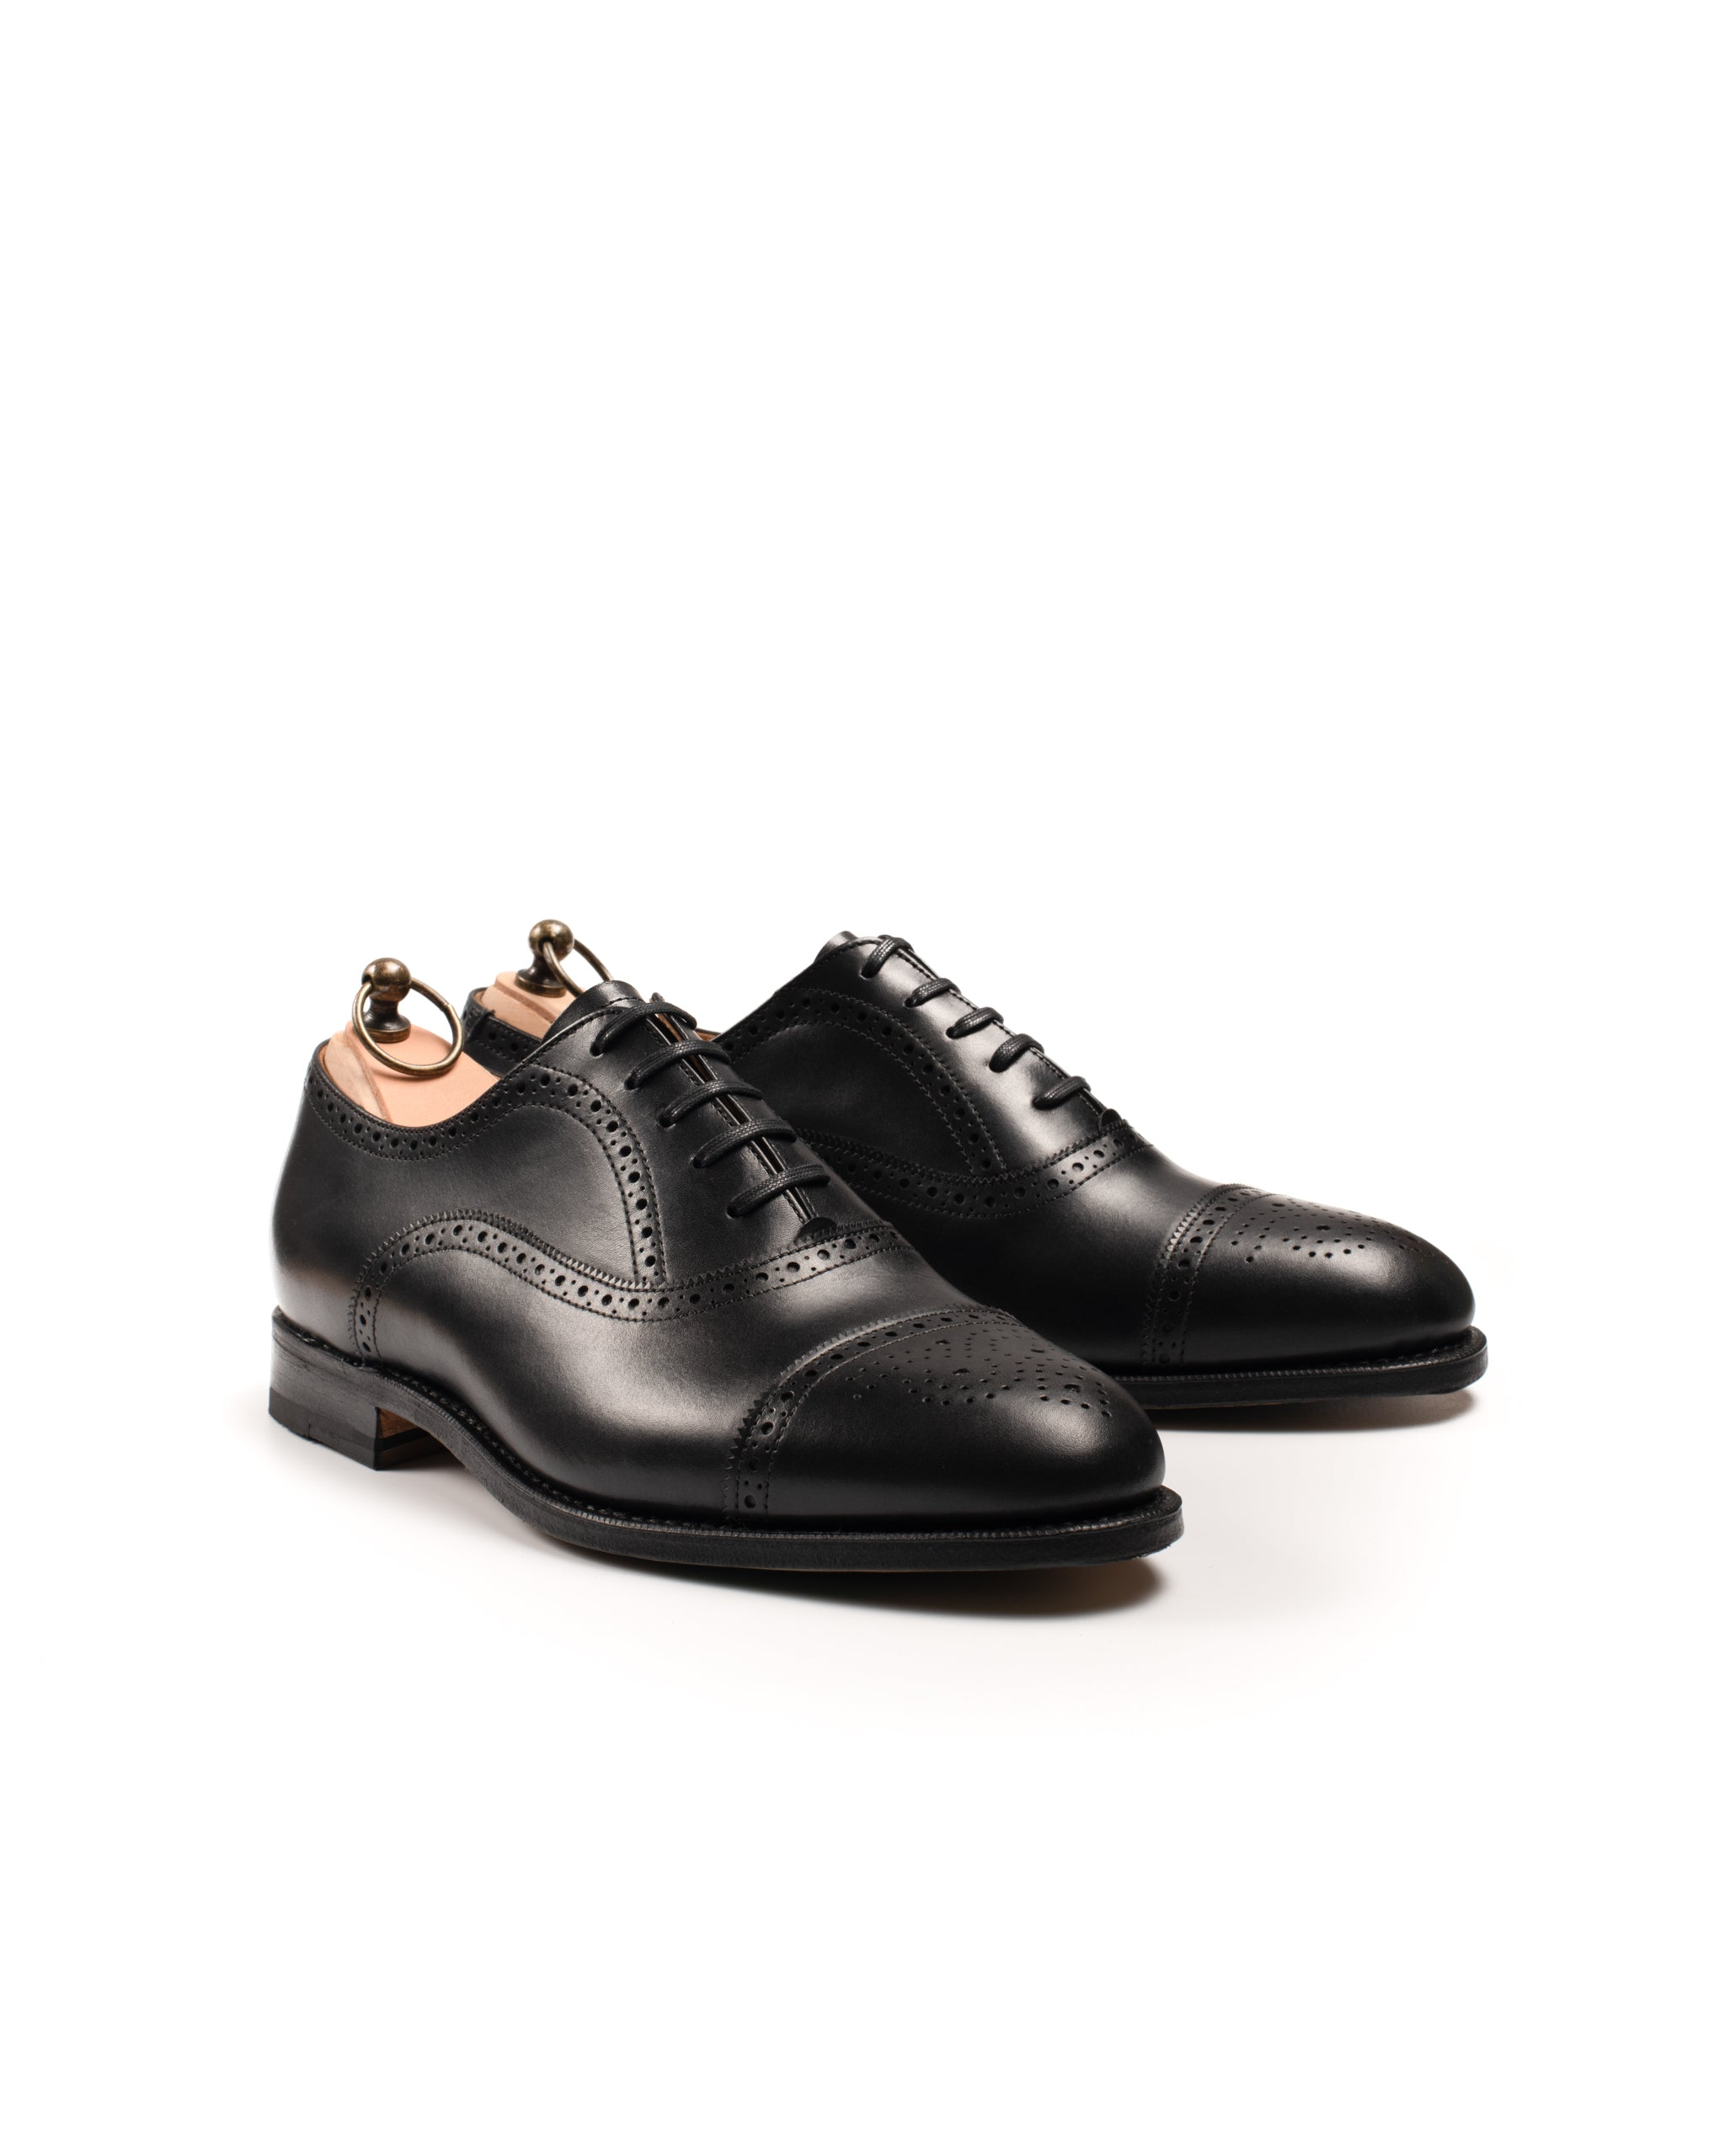 Oxford // Semi Brogue // Boxcalf // Schwarz // Rendenbach Ledersohle